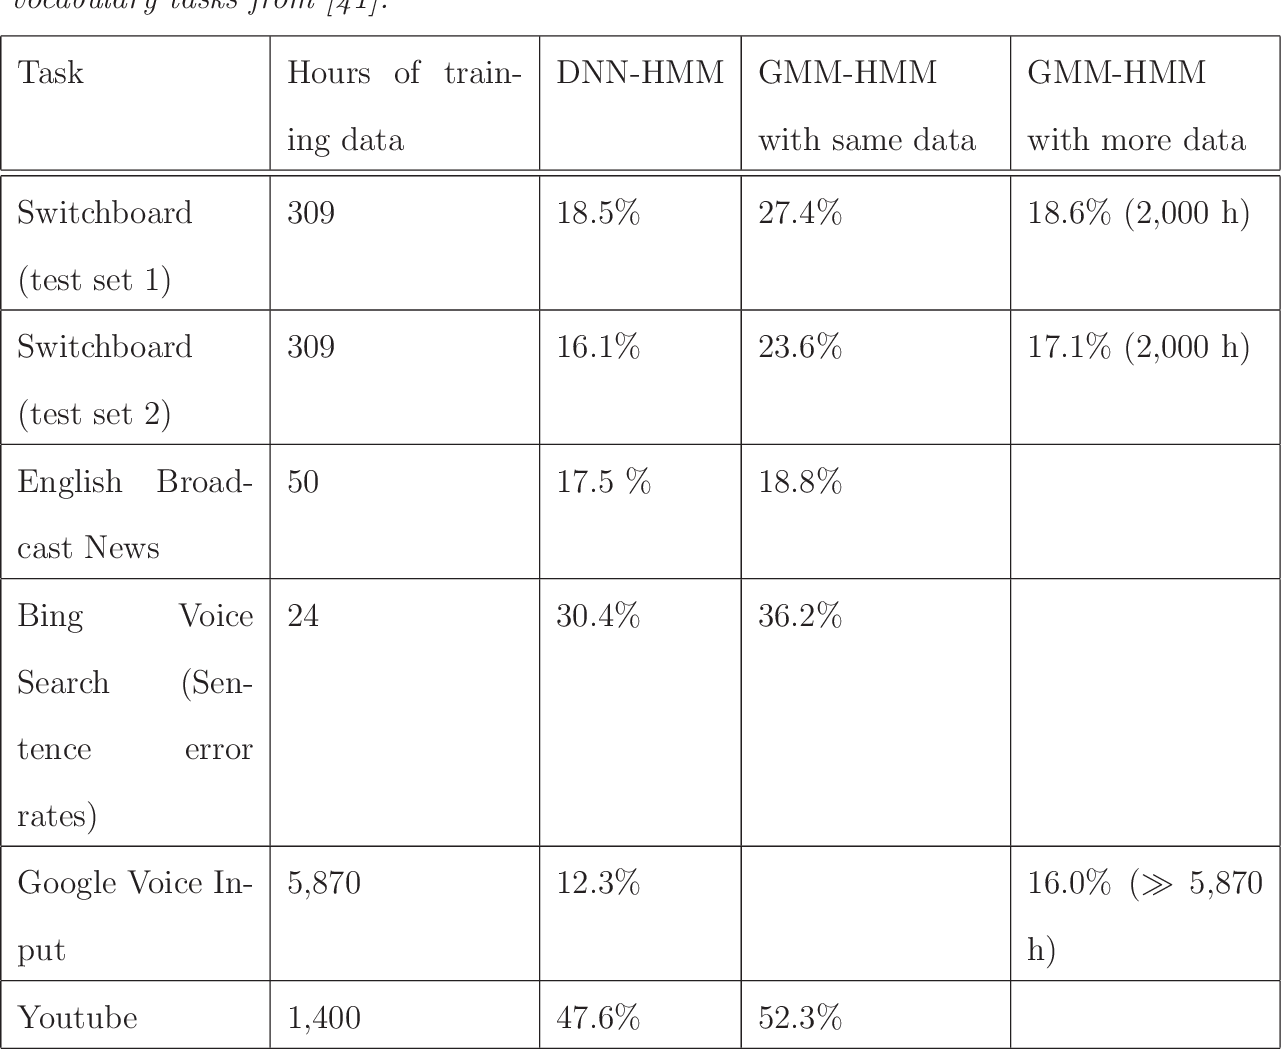 table 3.3